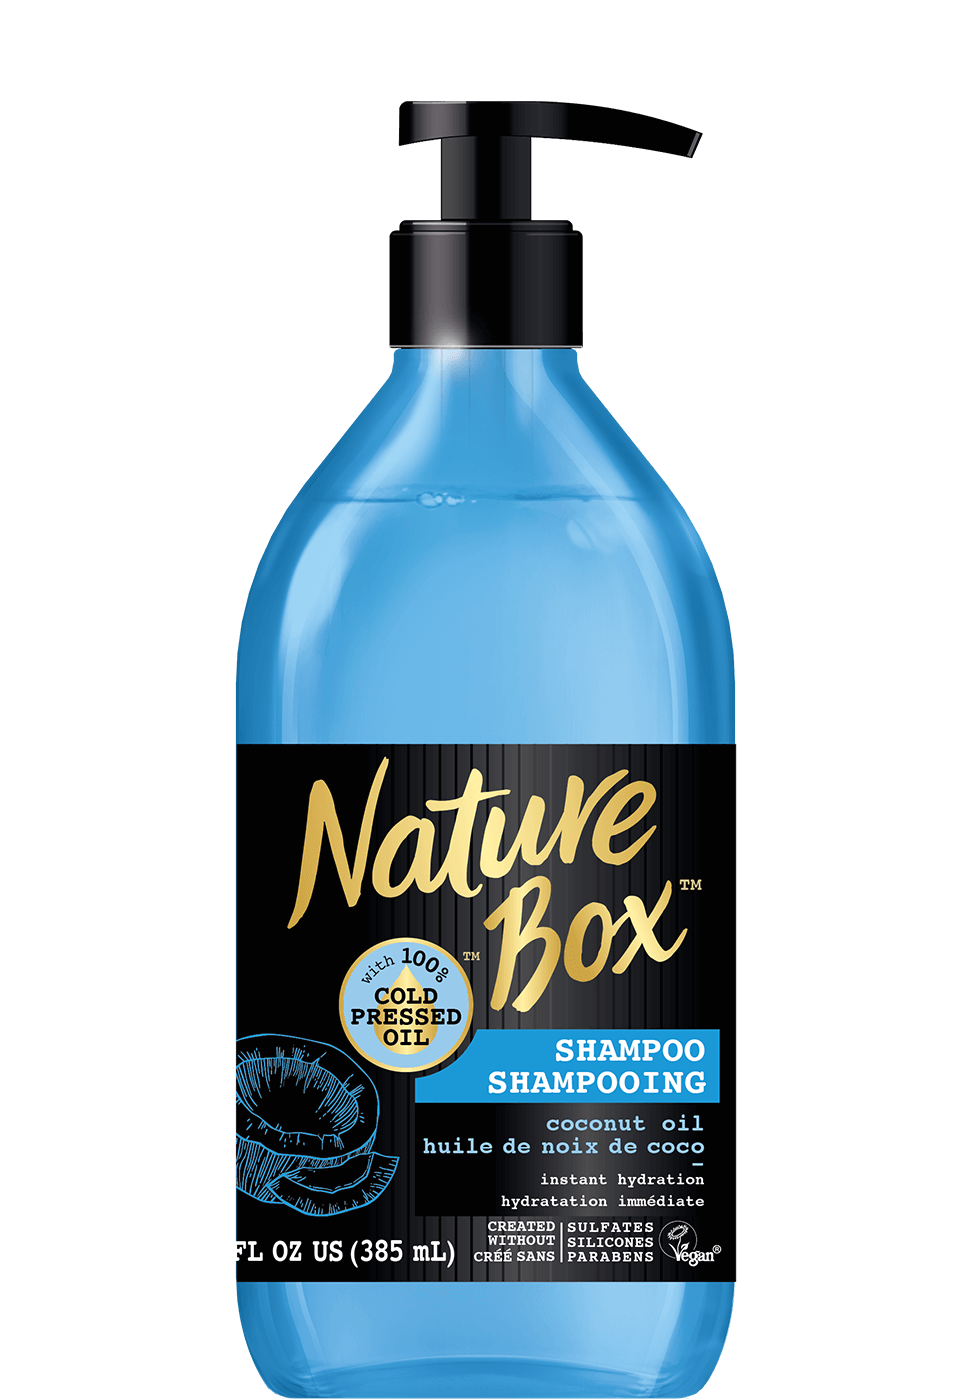 naturebox_ca_en_coconut_shampoo_970x1400